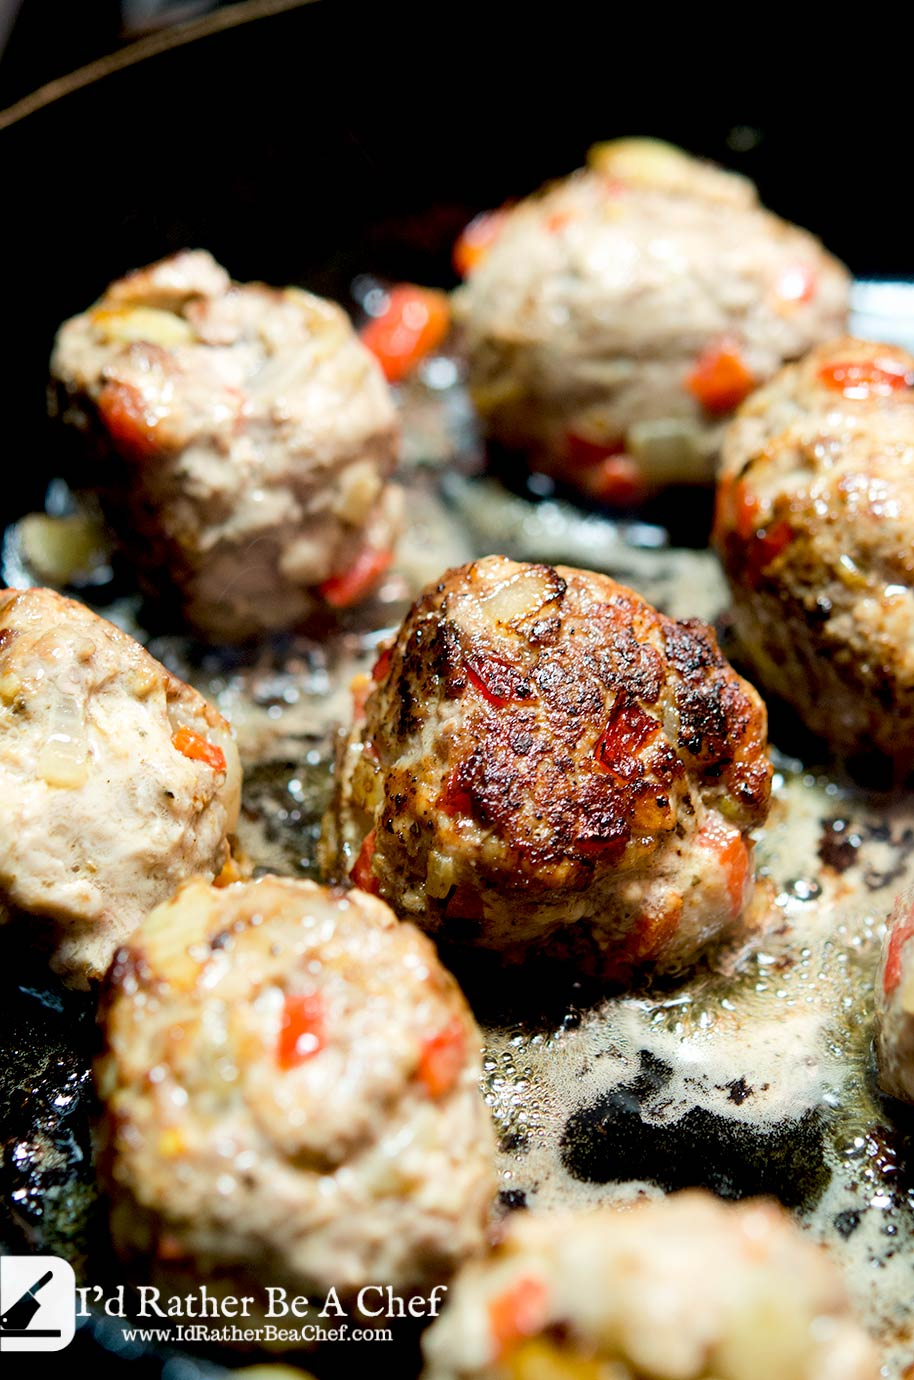 Italian meatball recipe without pork